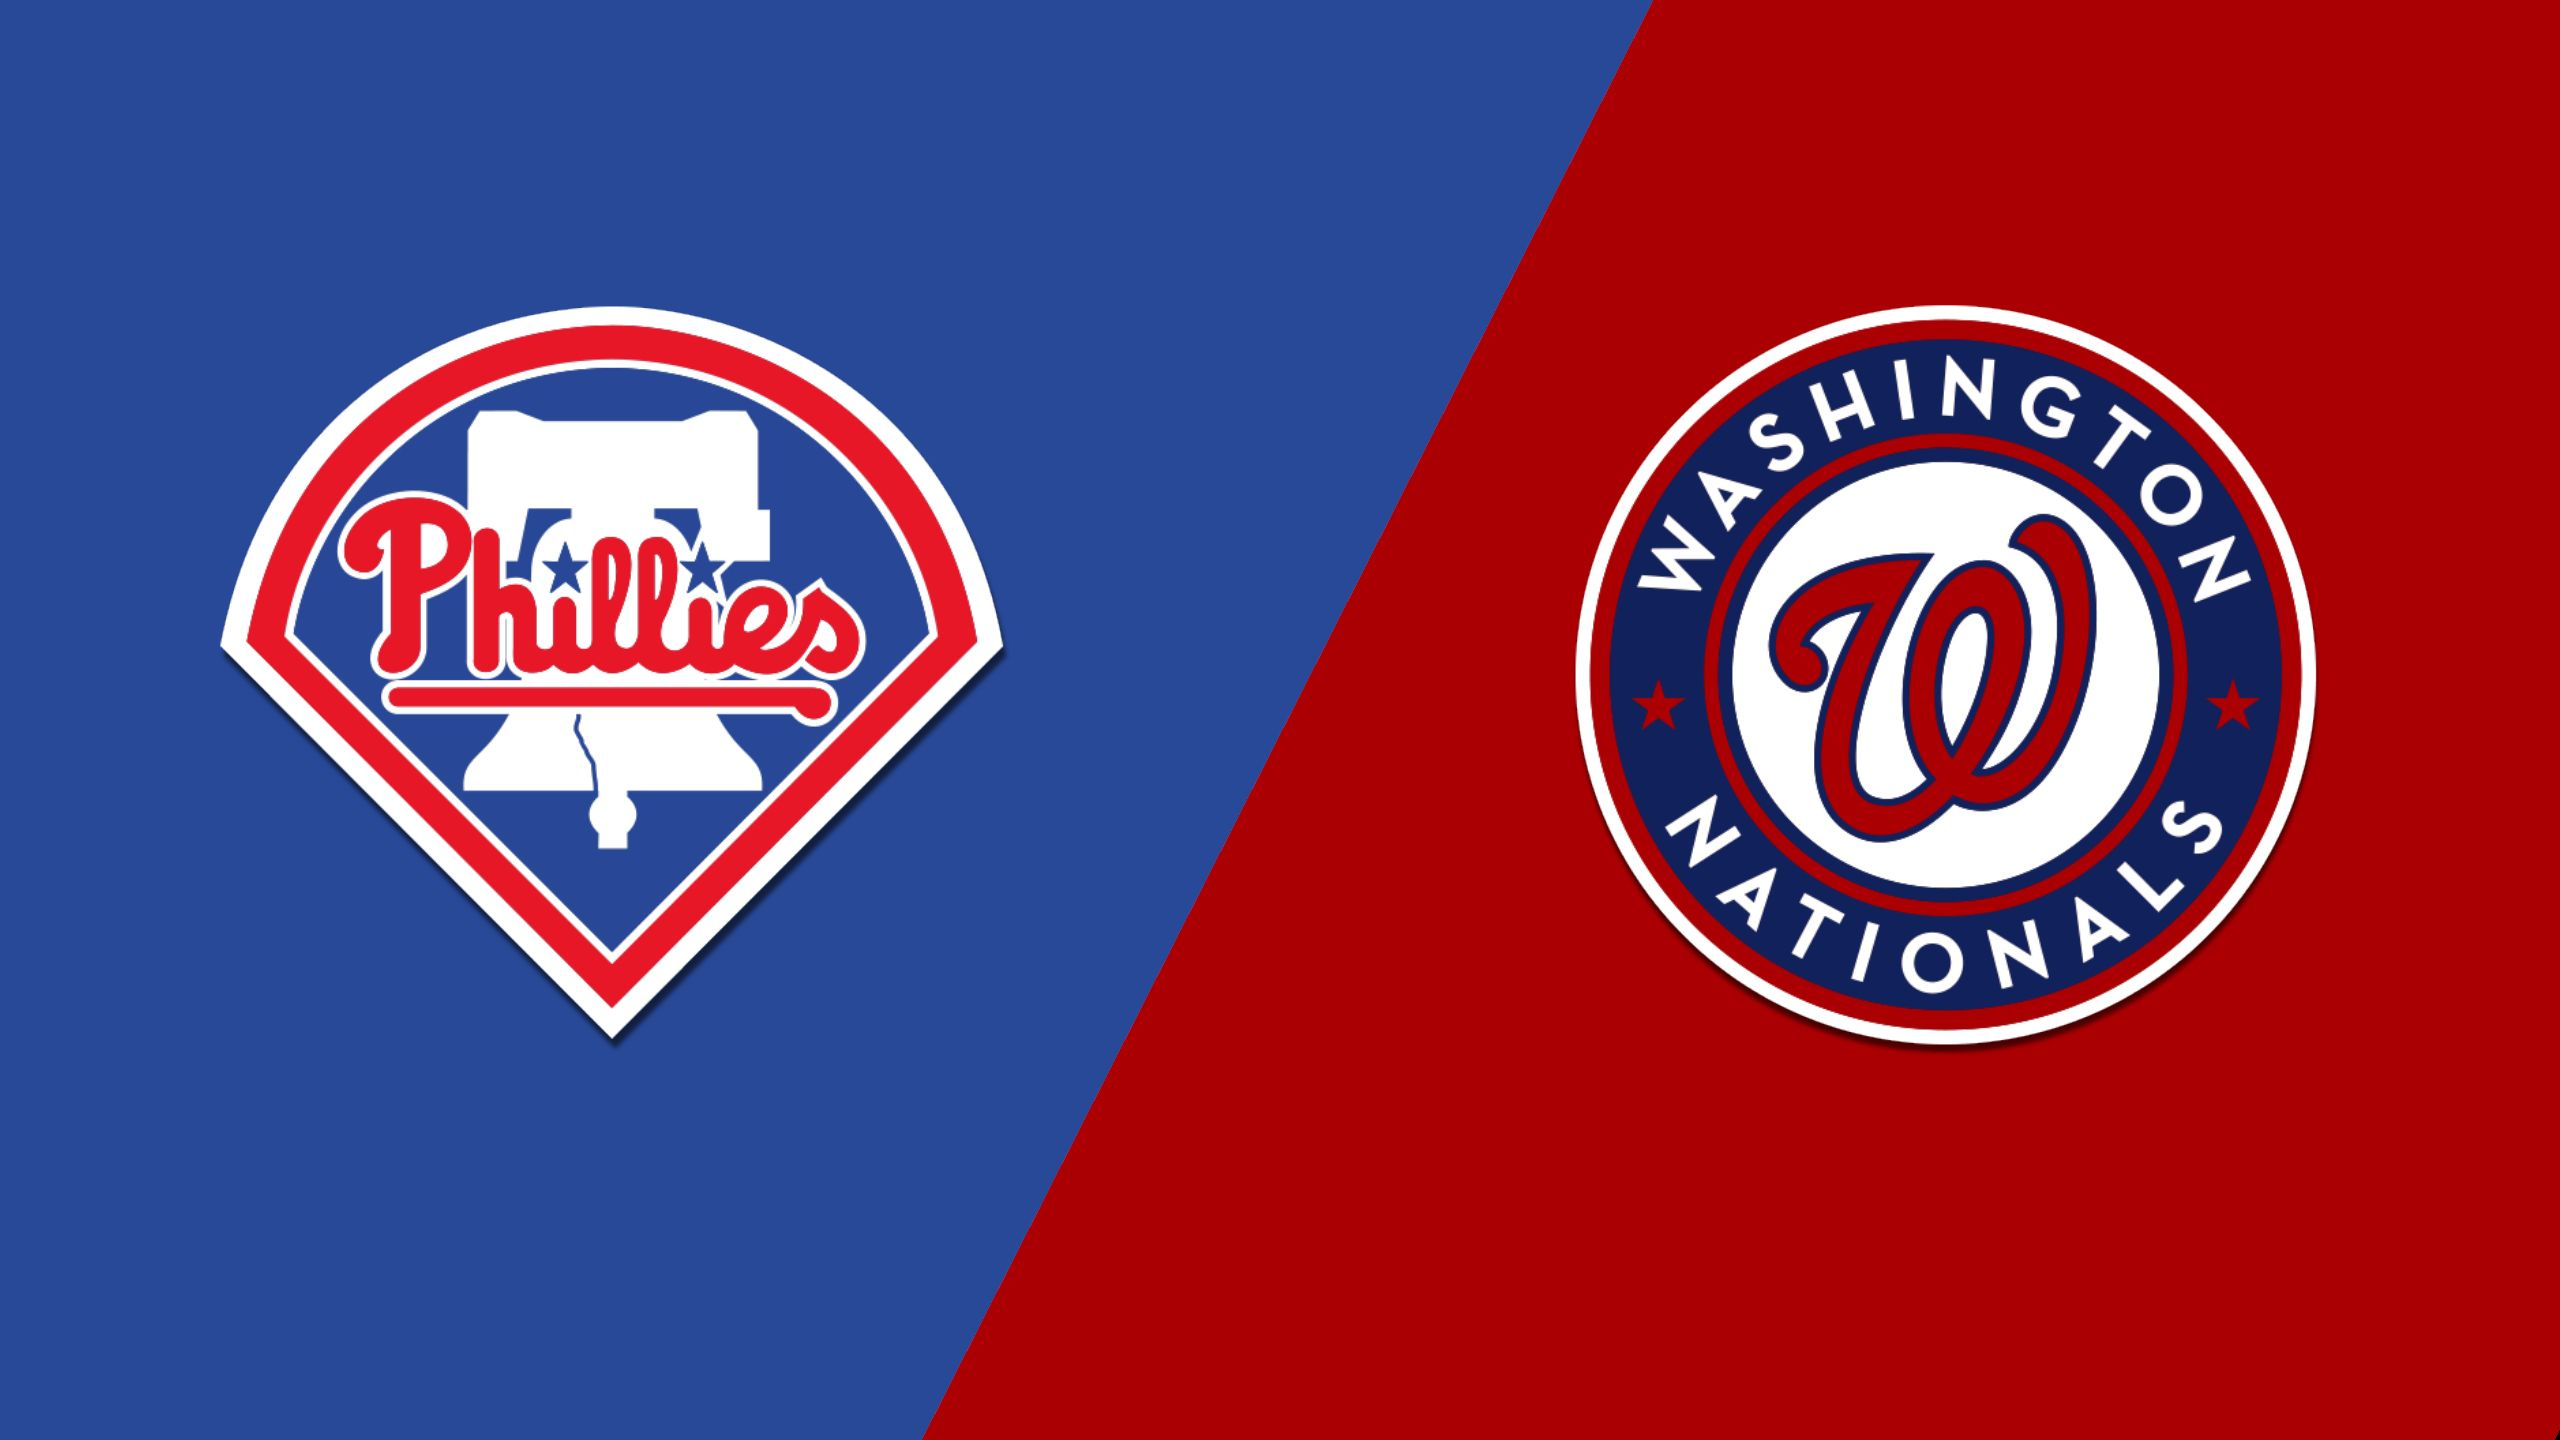 In Spanish - Philadelphia Phillies vs. Washington Nationals